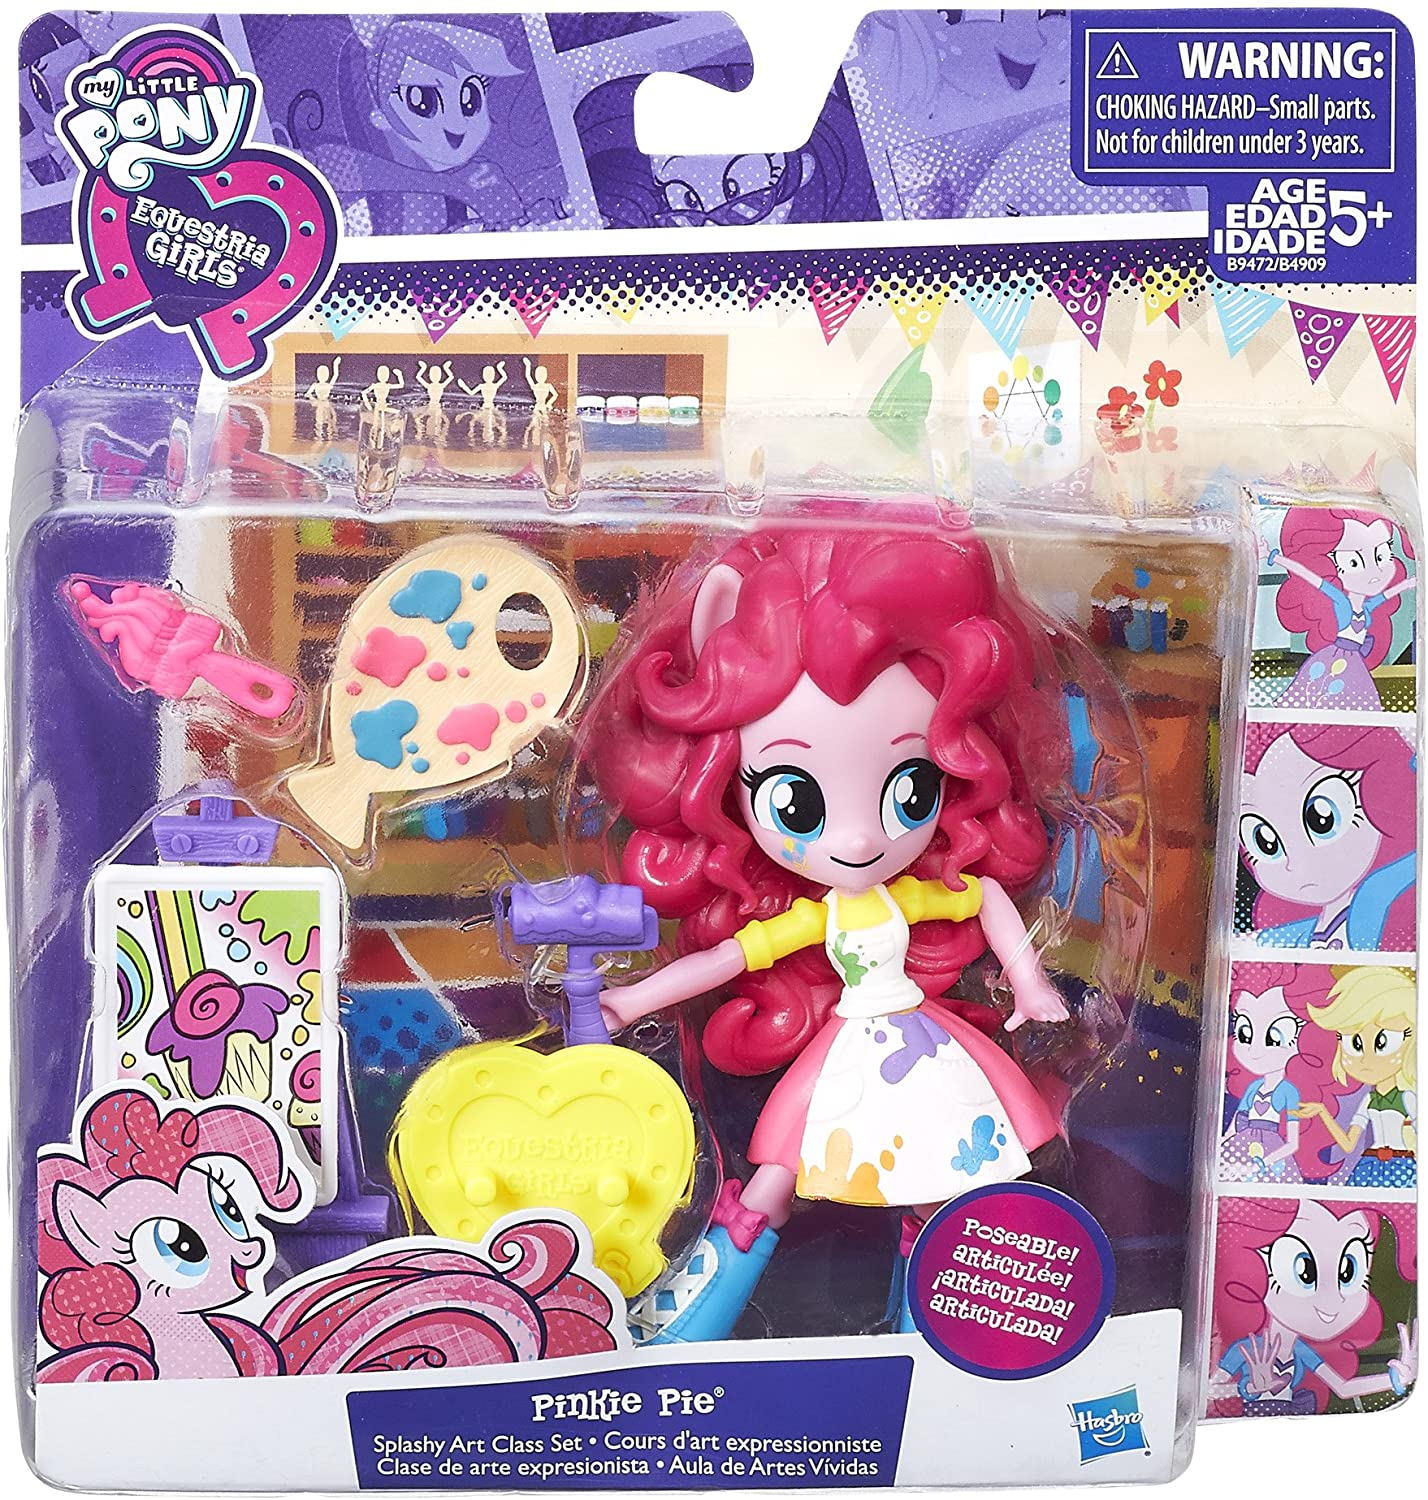 EG Pinkie Pie Splashy Art Class Set 1